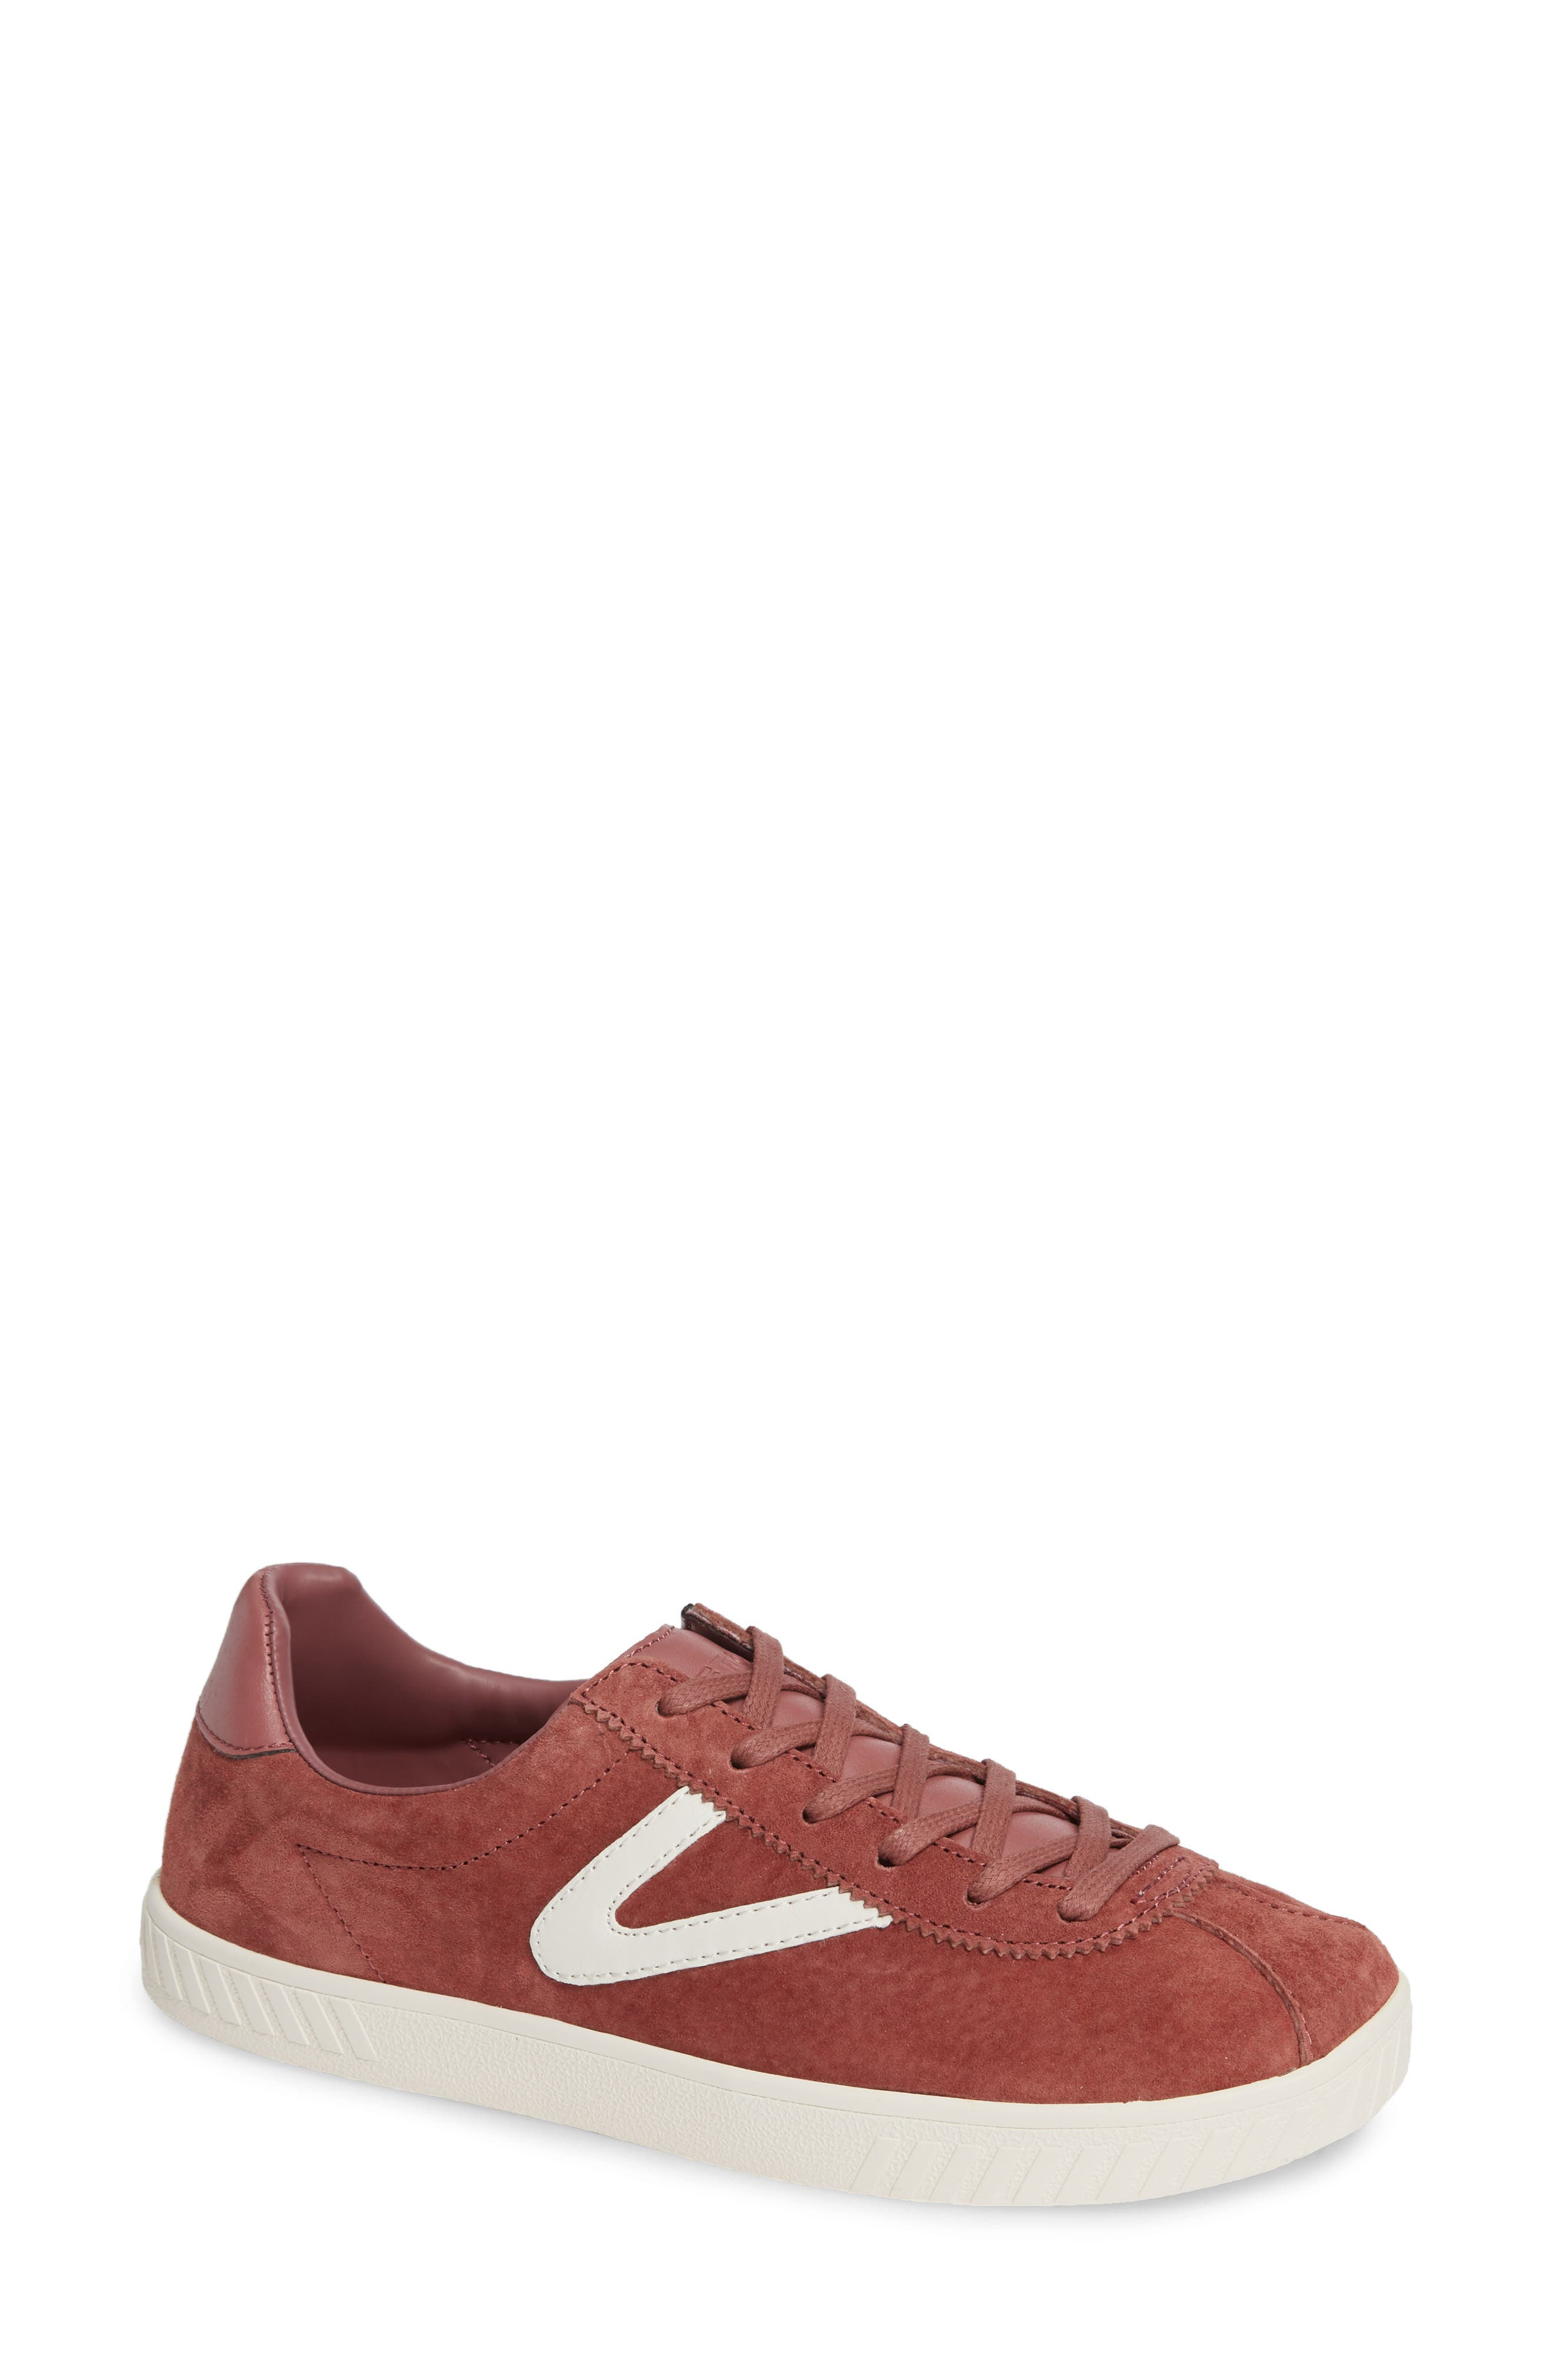 'Camden 3' Sneaker,                             Main thumbnail 1, color,                             DUSTY ROSE/ VINTAGE WHITE